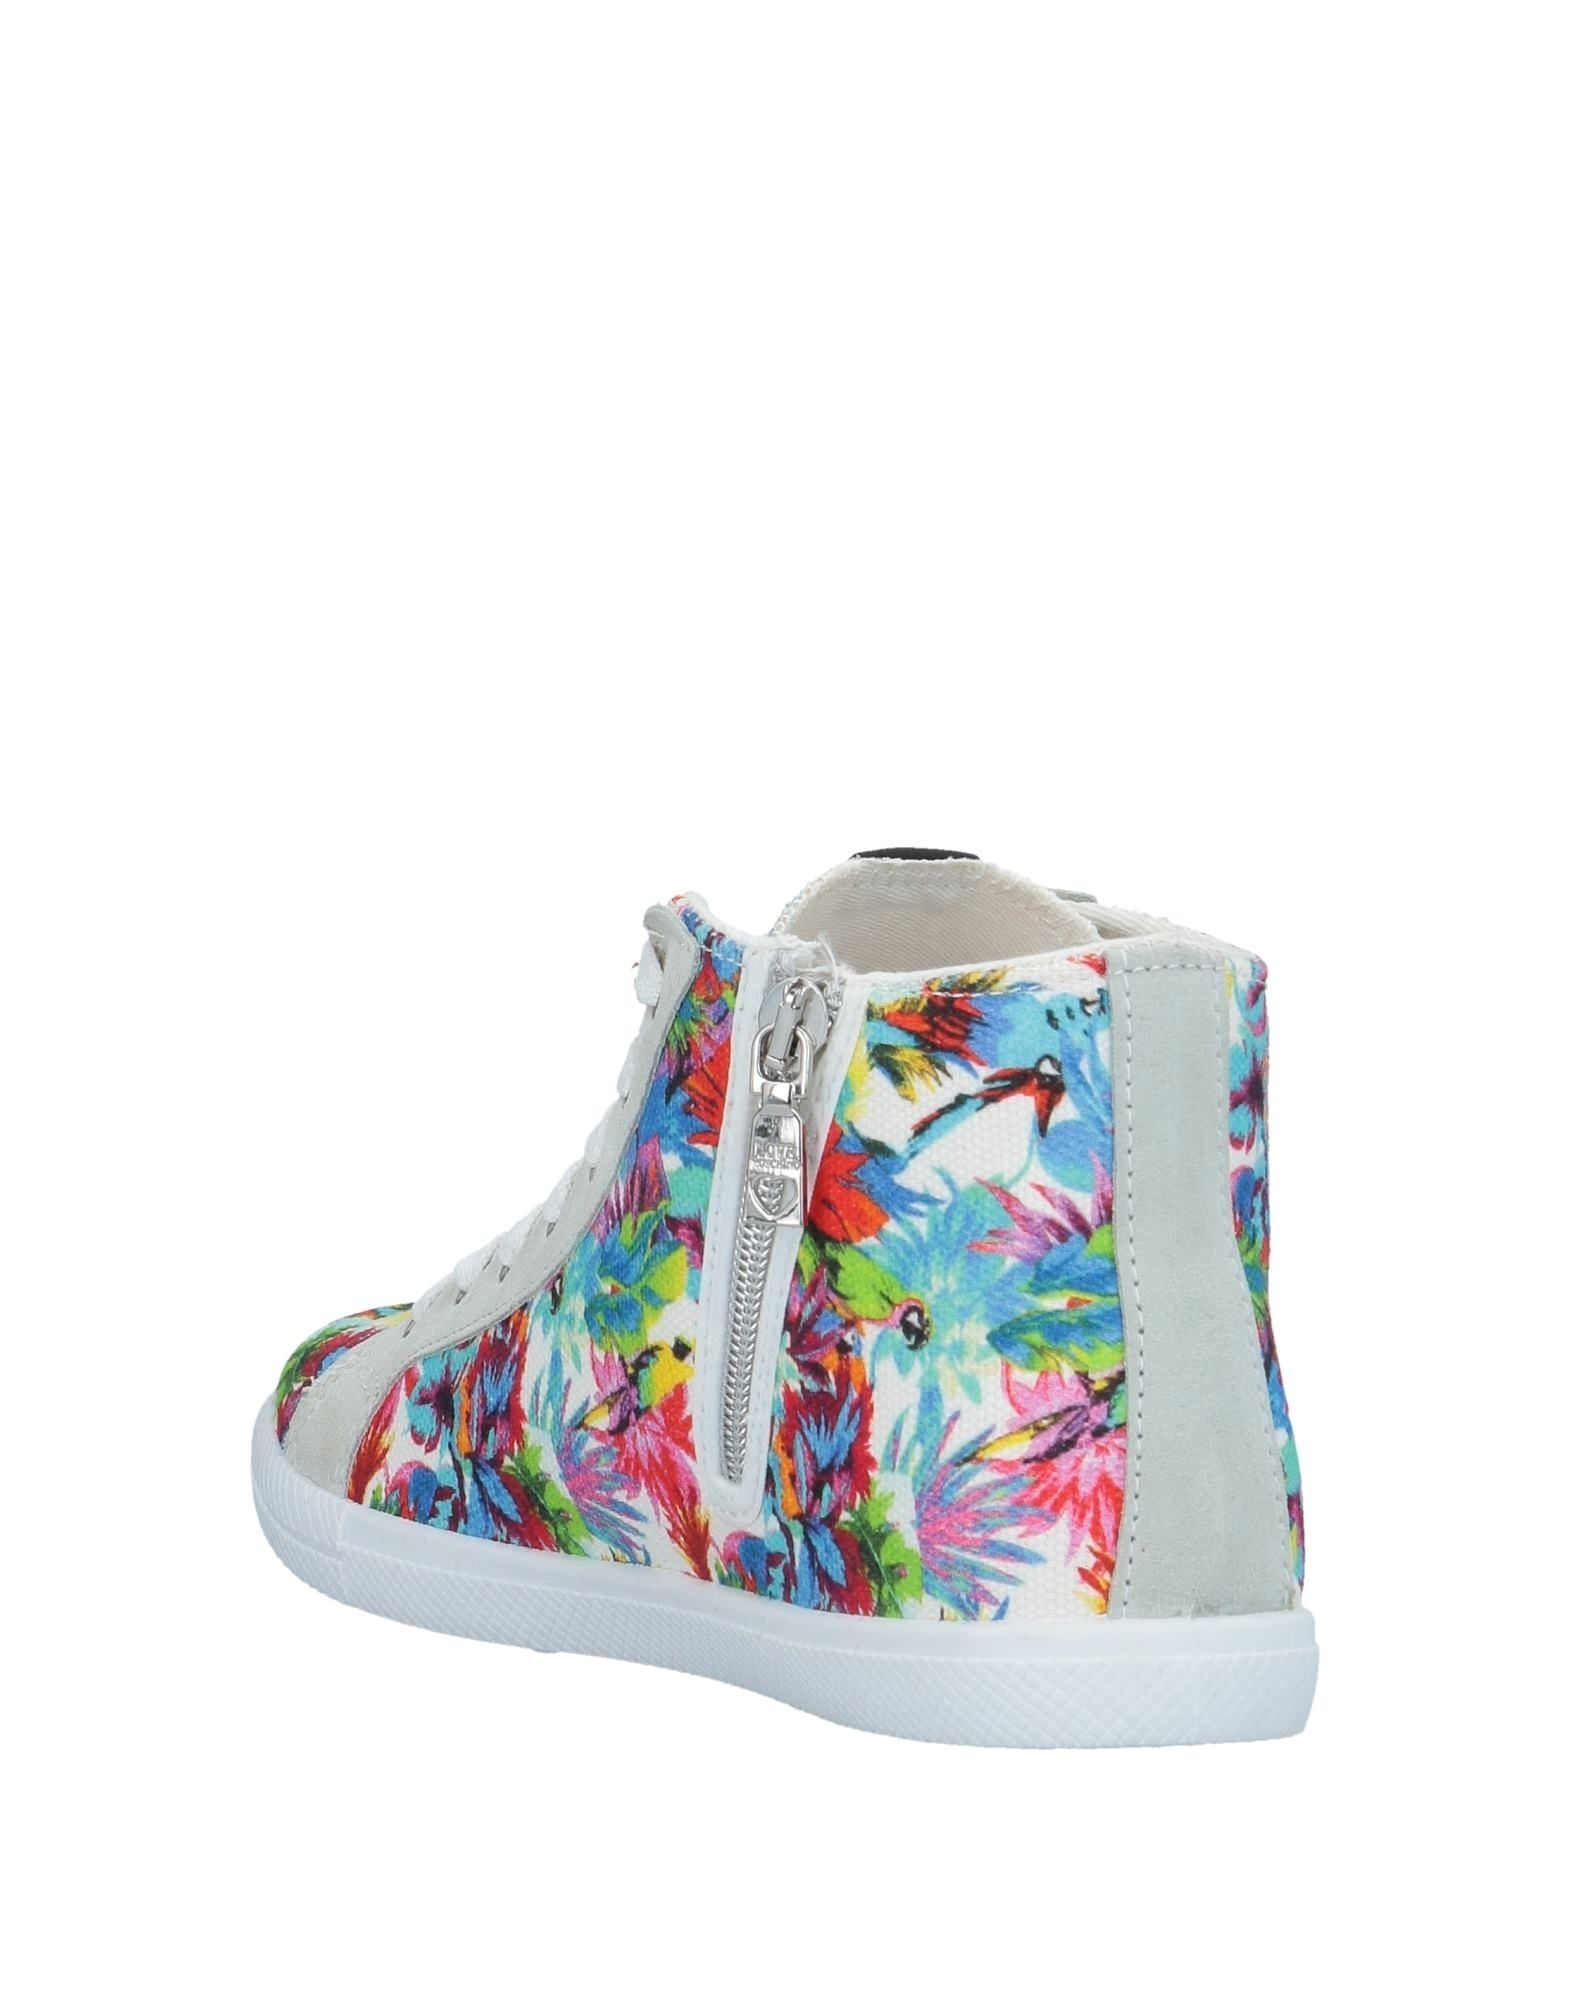 Love Moschino Moschino Moschino Sneakers - Women Love Moschino Sneakers online on  United Kingdom - 11525795TU 2fa588